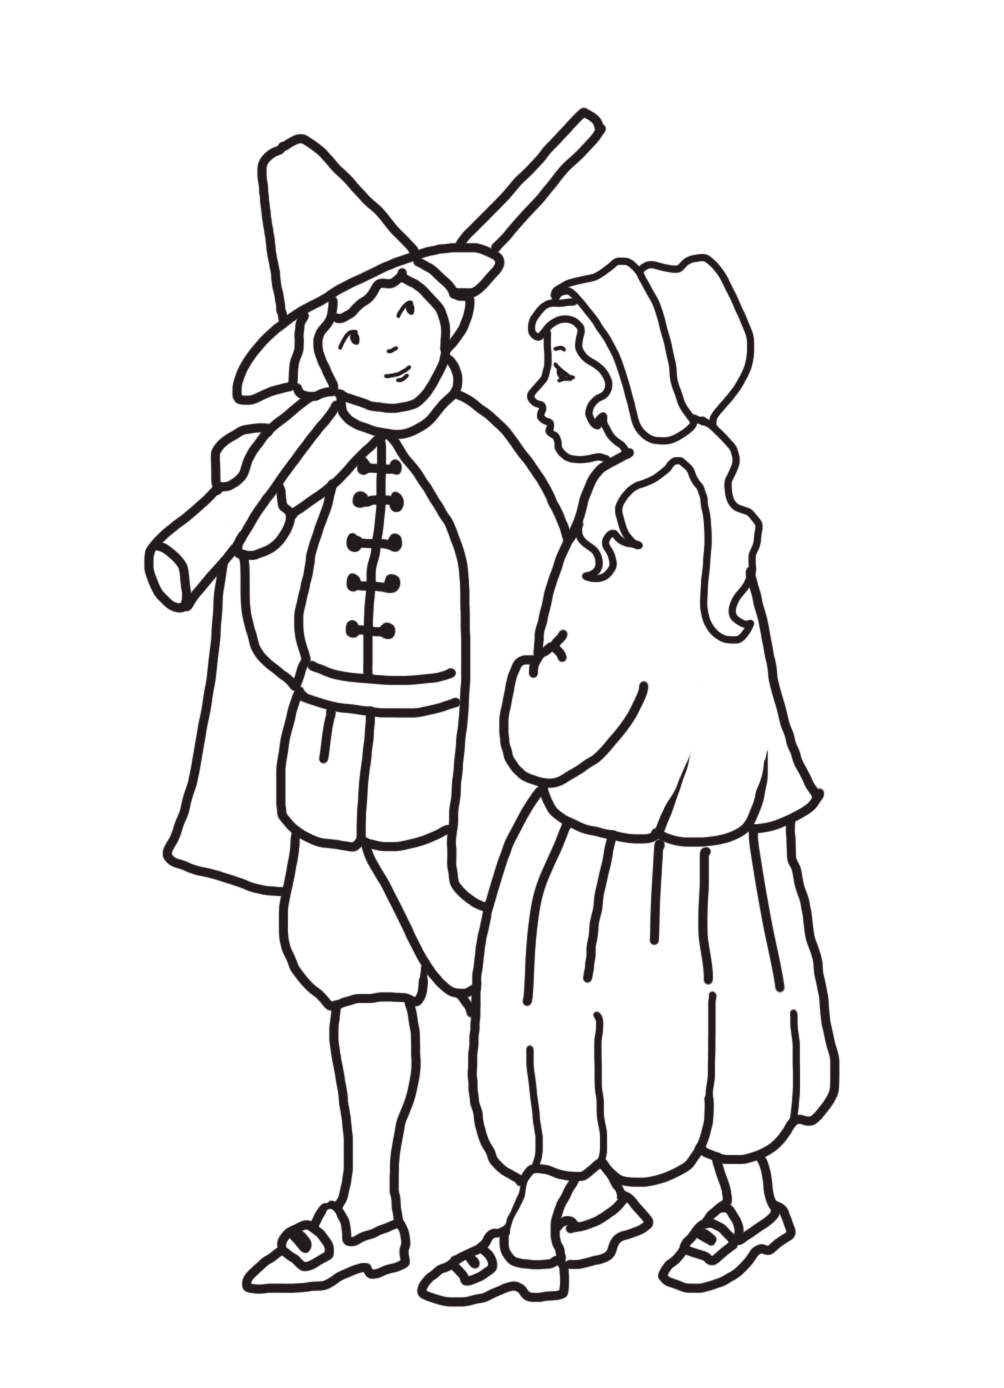 pilgrim boy and pilgrim girl